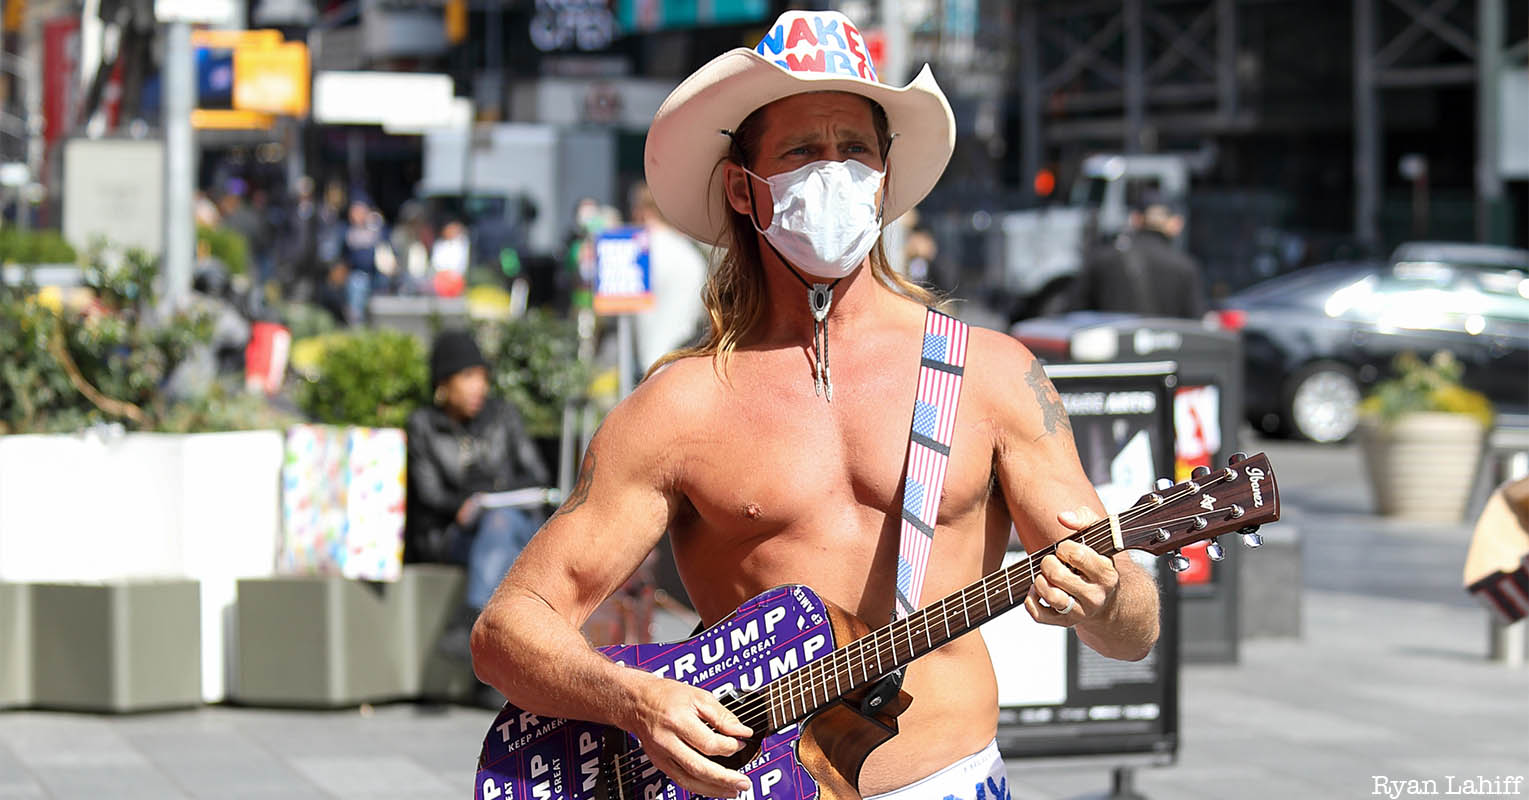 Naked-Cowboy-Face-mask-Coronavirus-Times-Square-NYC